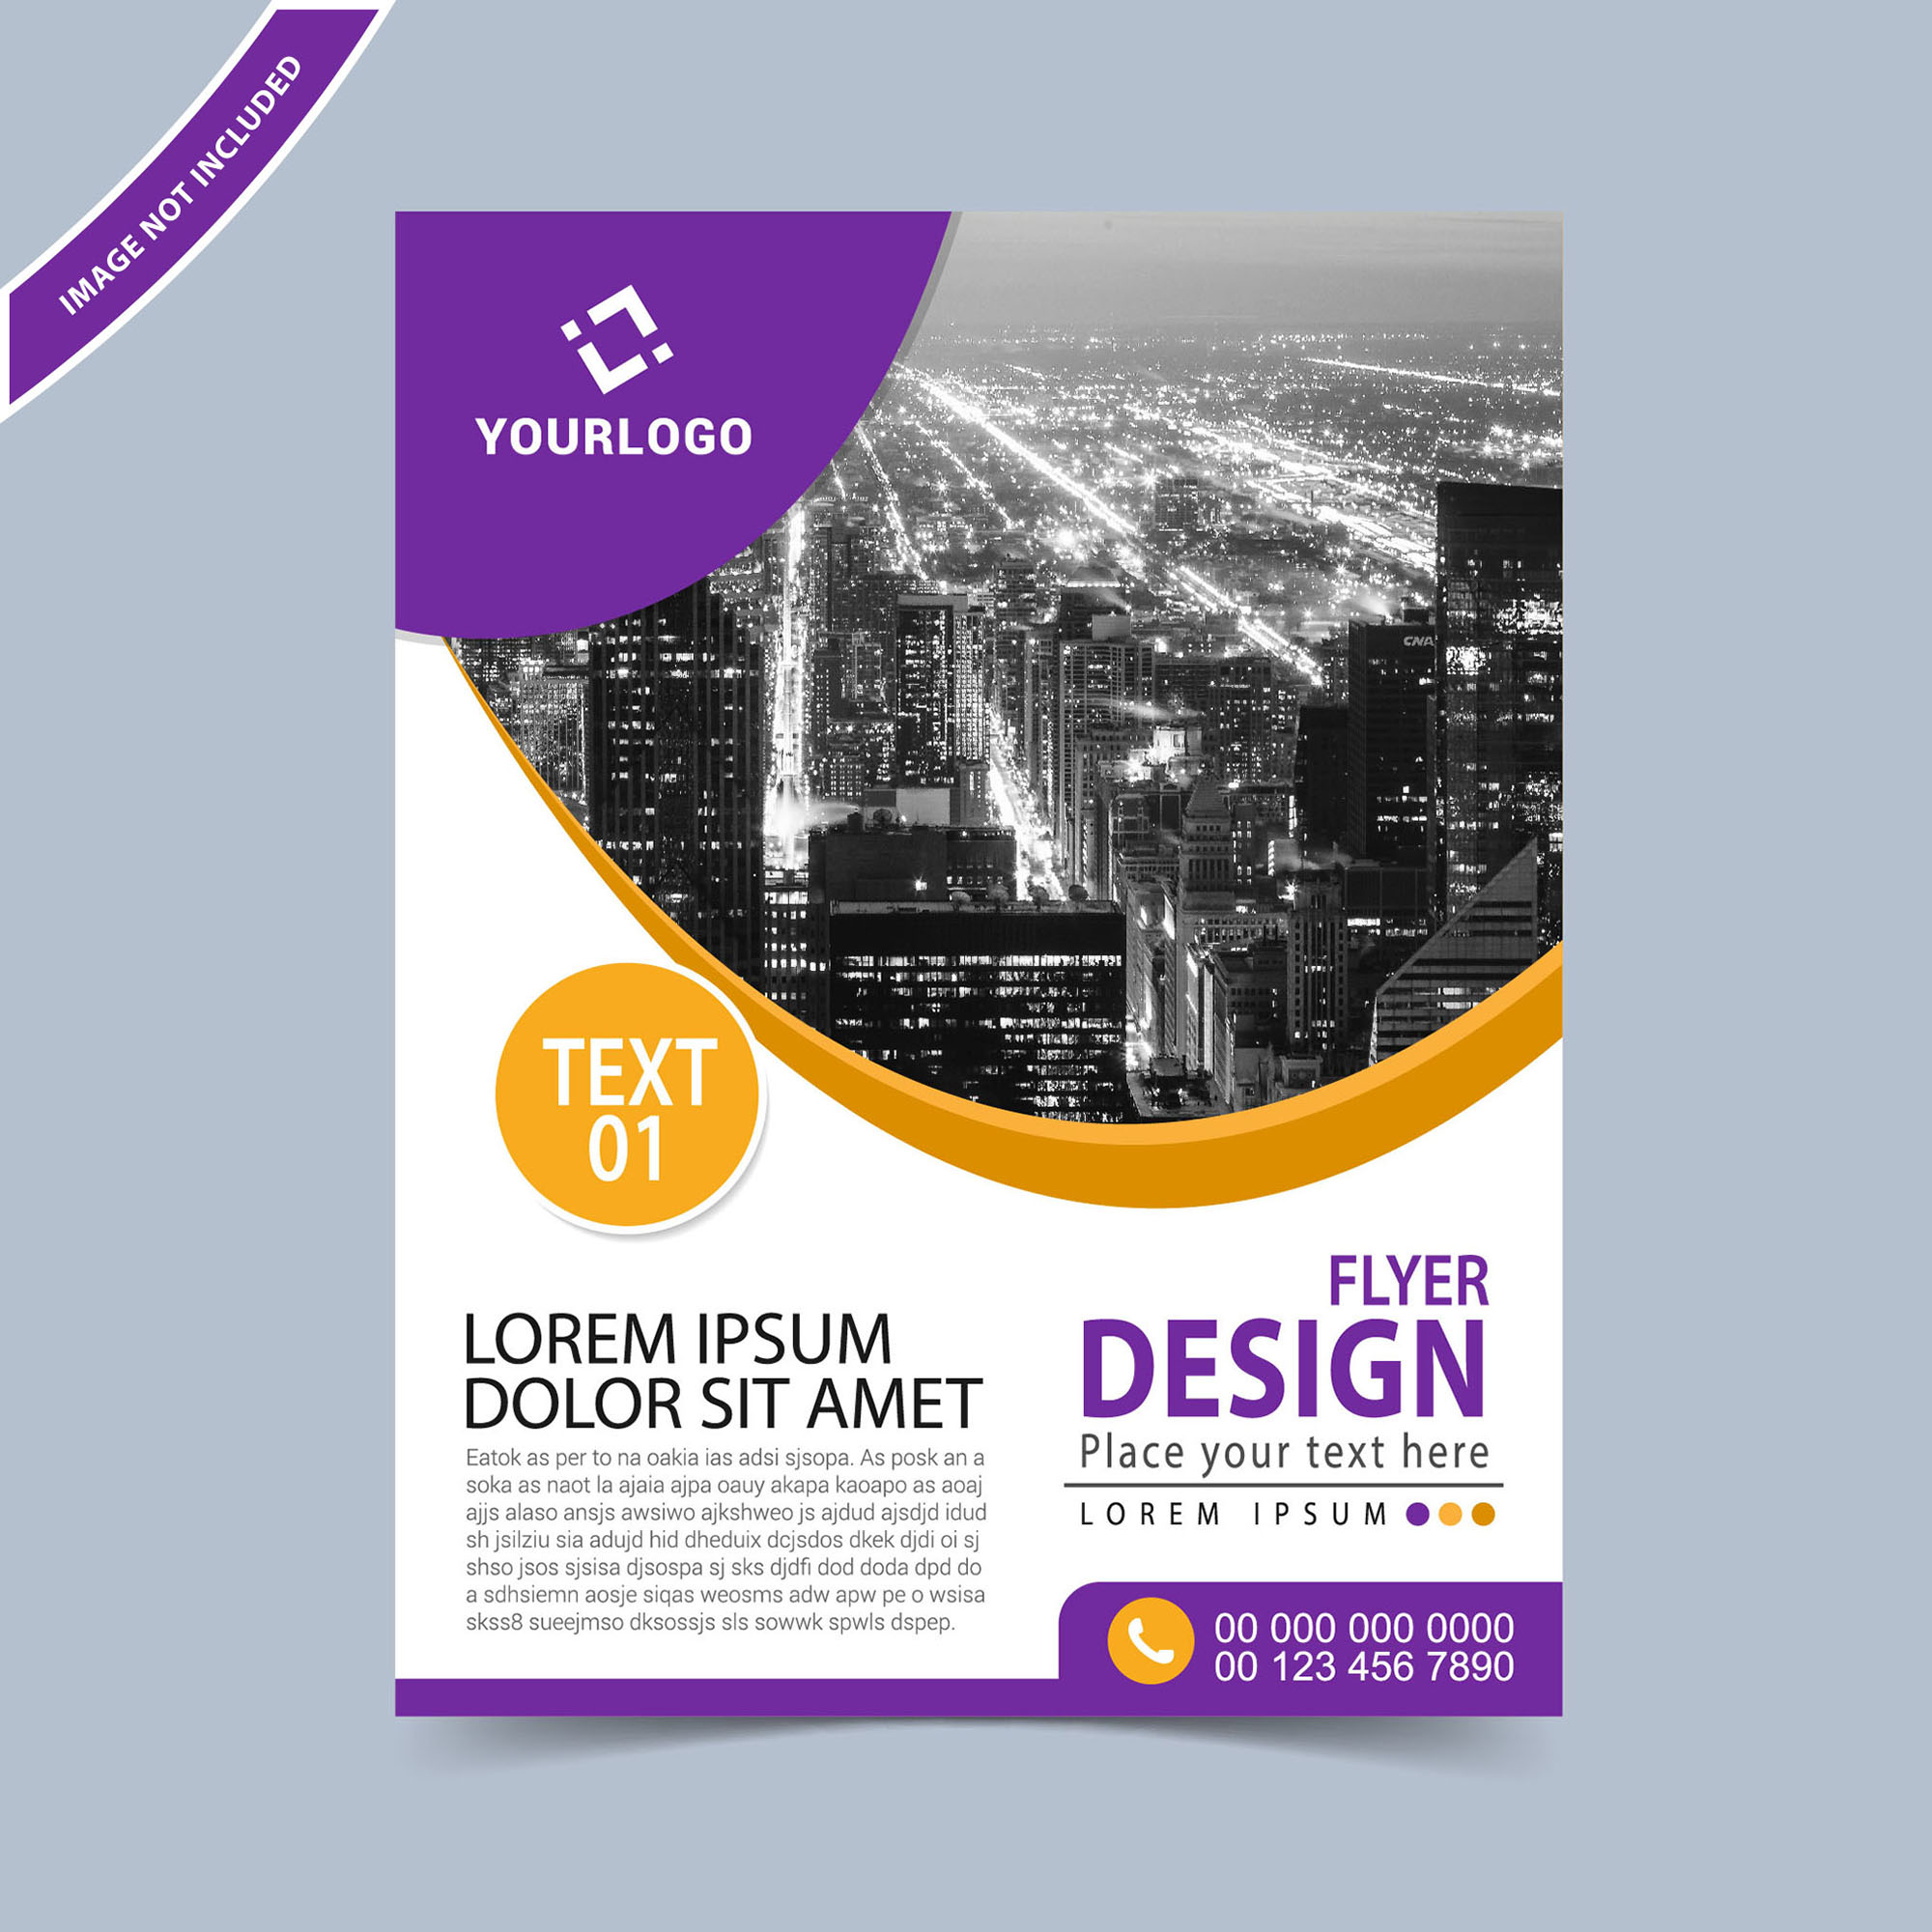 Business flyer design template free download wisxi flyers flyer design flyer template free flyer design abstract business cheaphphosting Choice Image